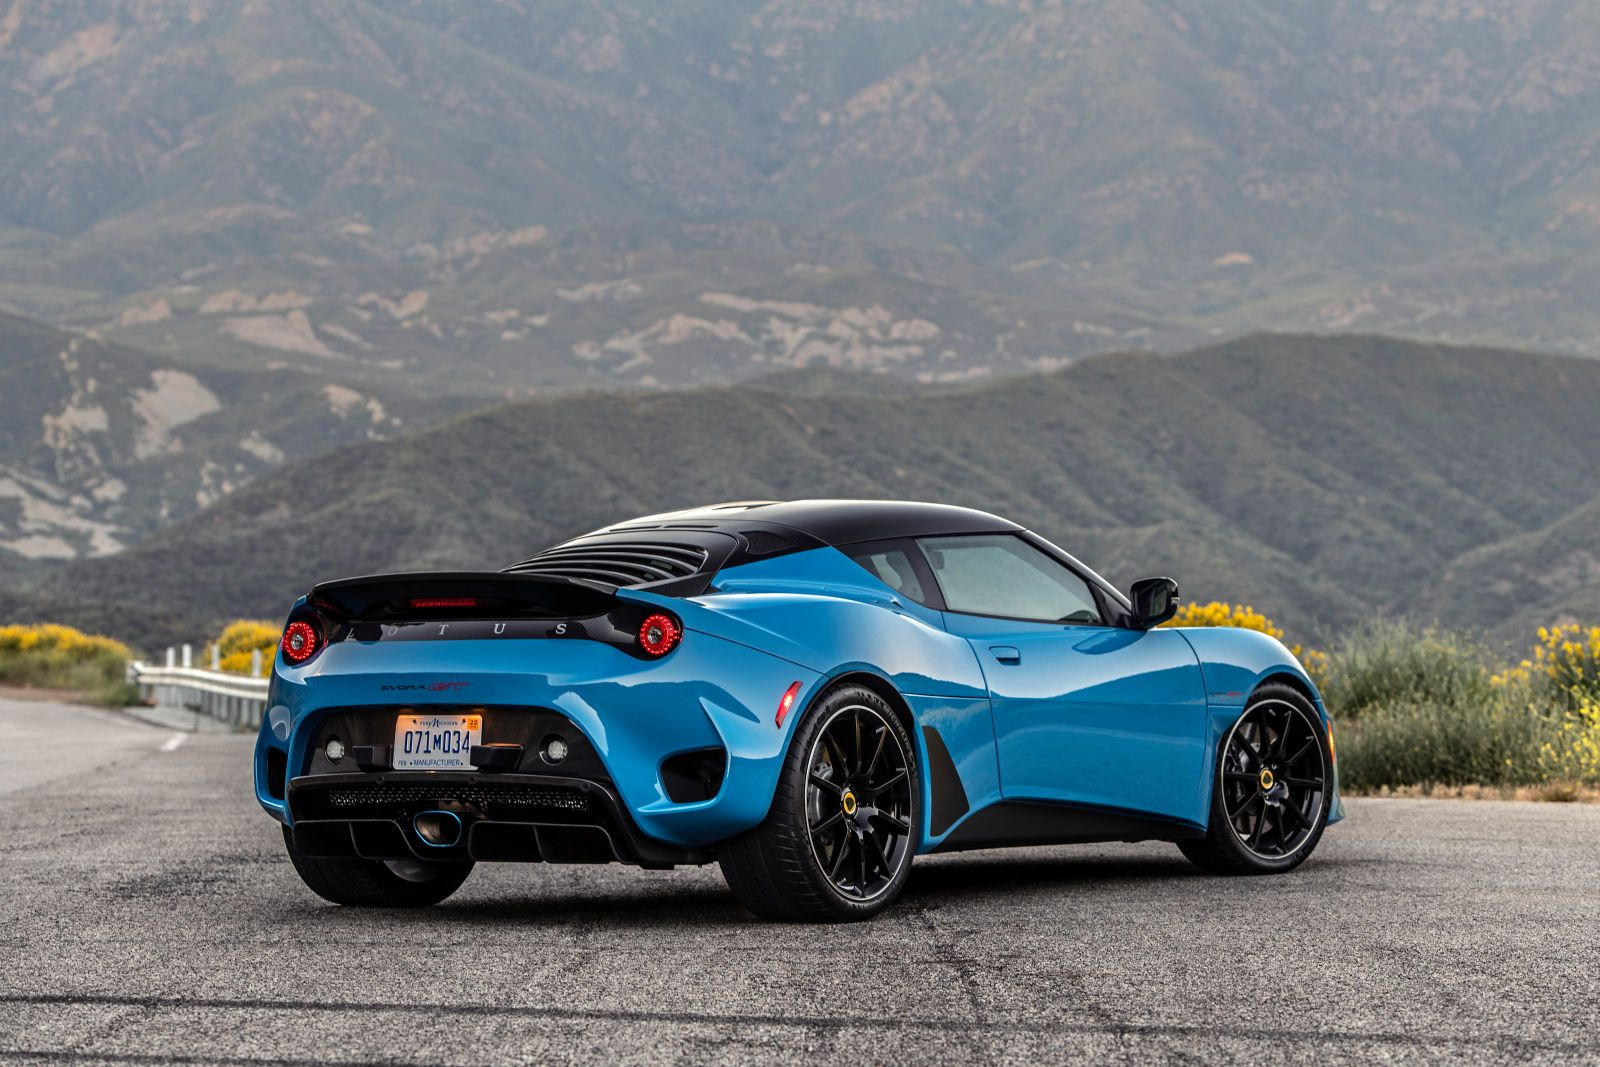 The 2020 Lotus Evora Gt Gets Its Rear Seat Back And 6 Extra Hp With Images Car Performance Cars Lotus